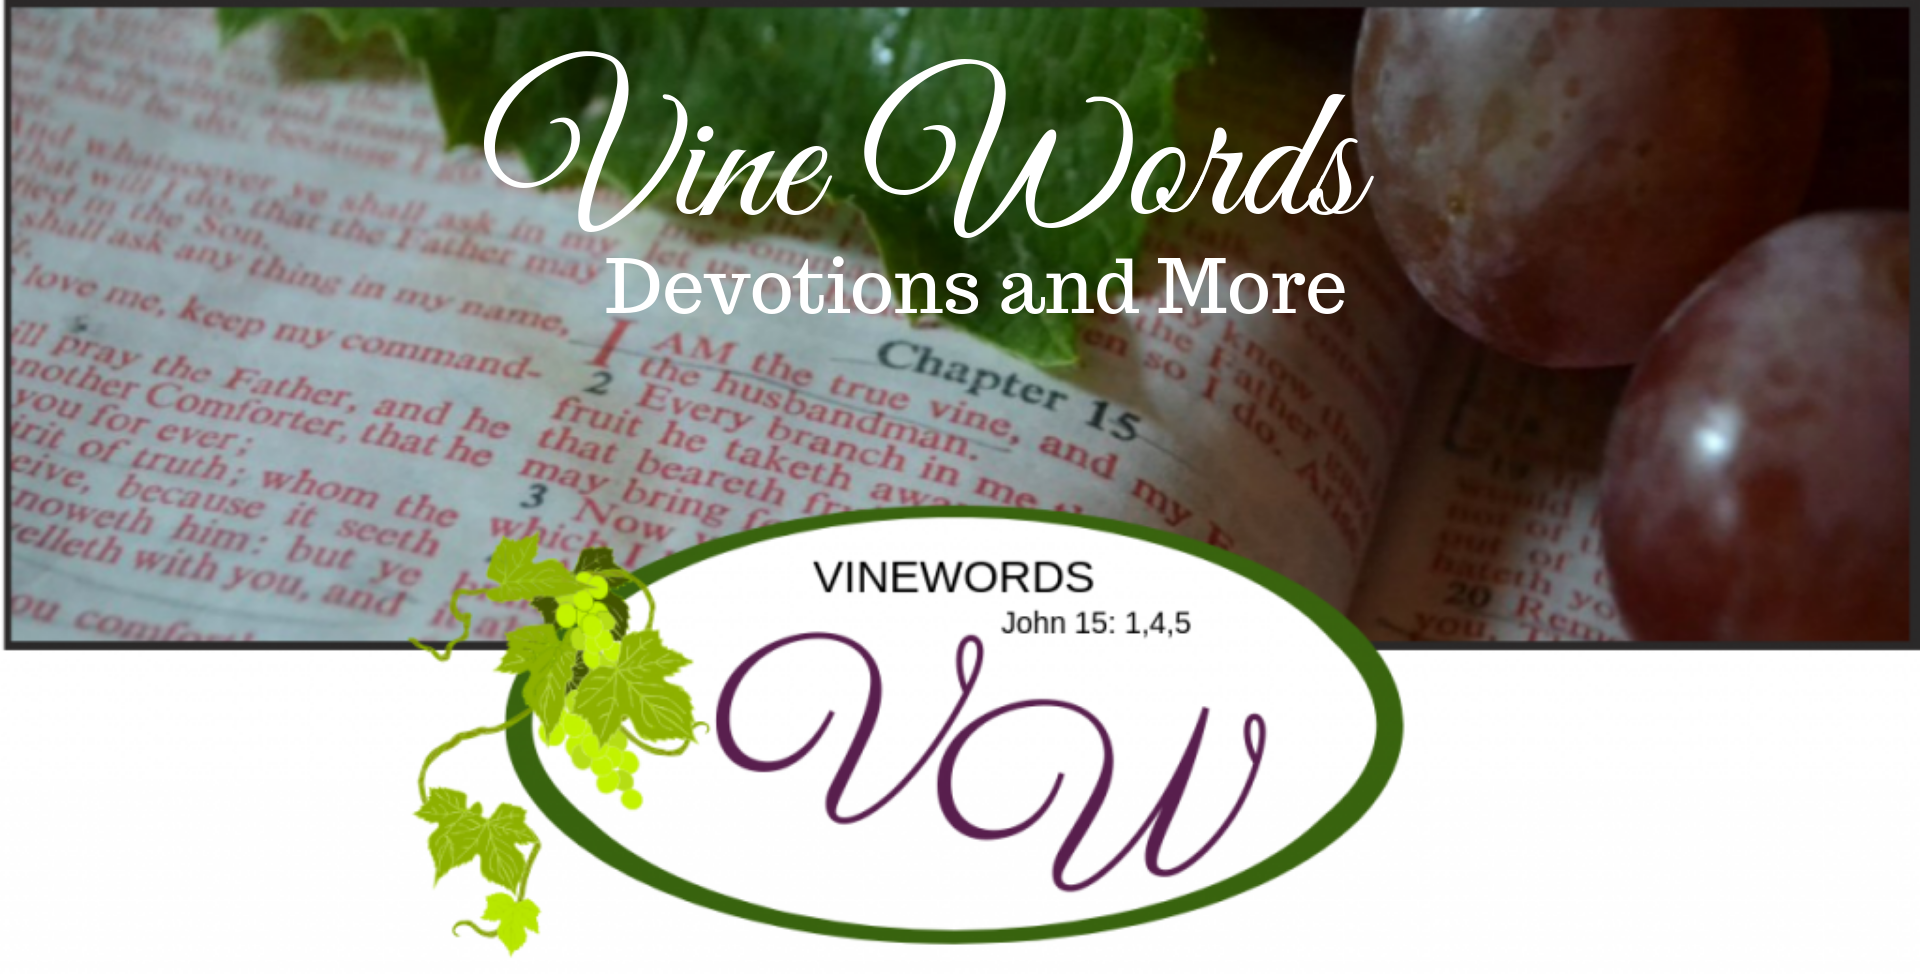 VineWords ~ Devotions and More